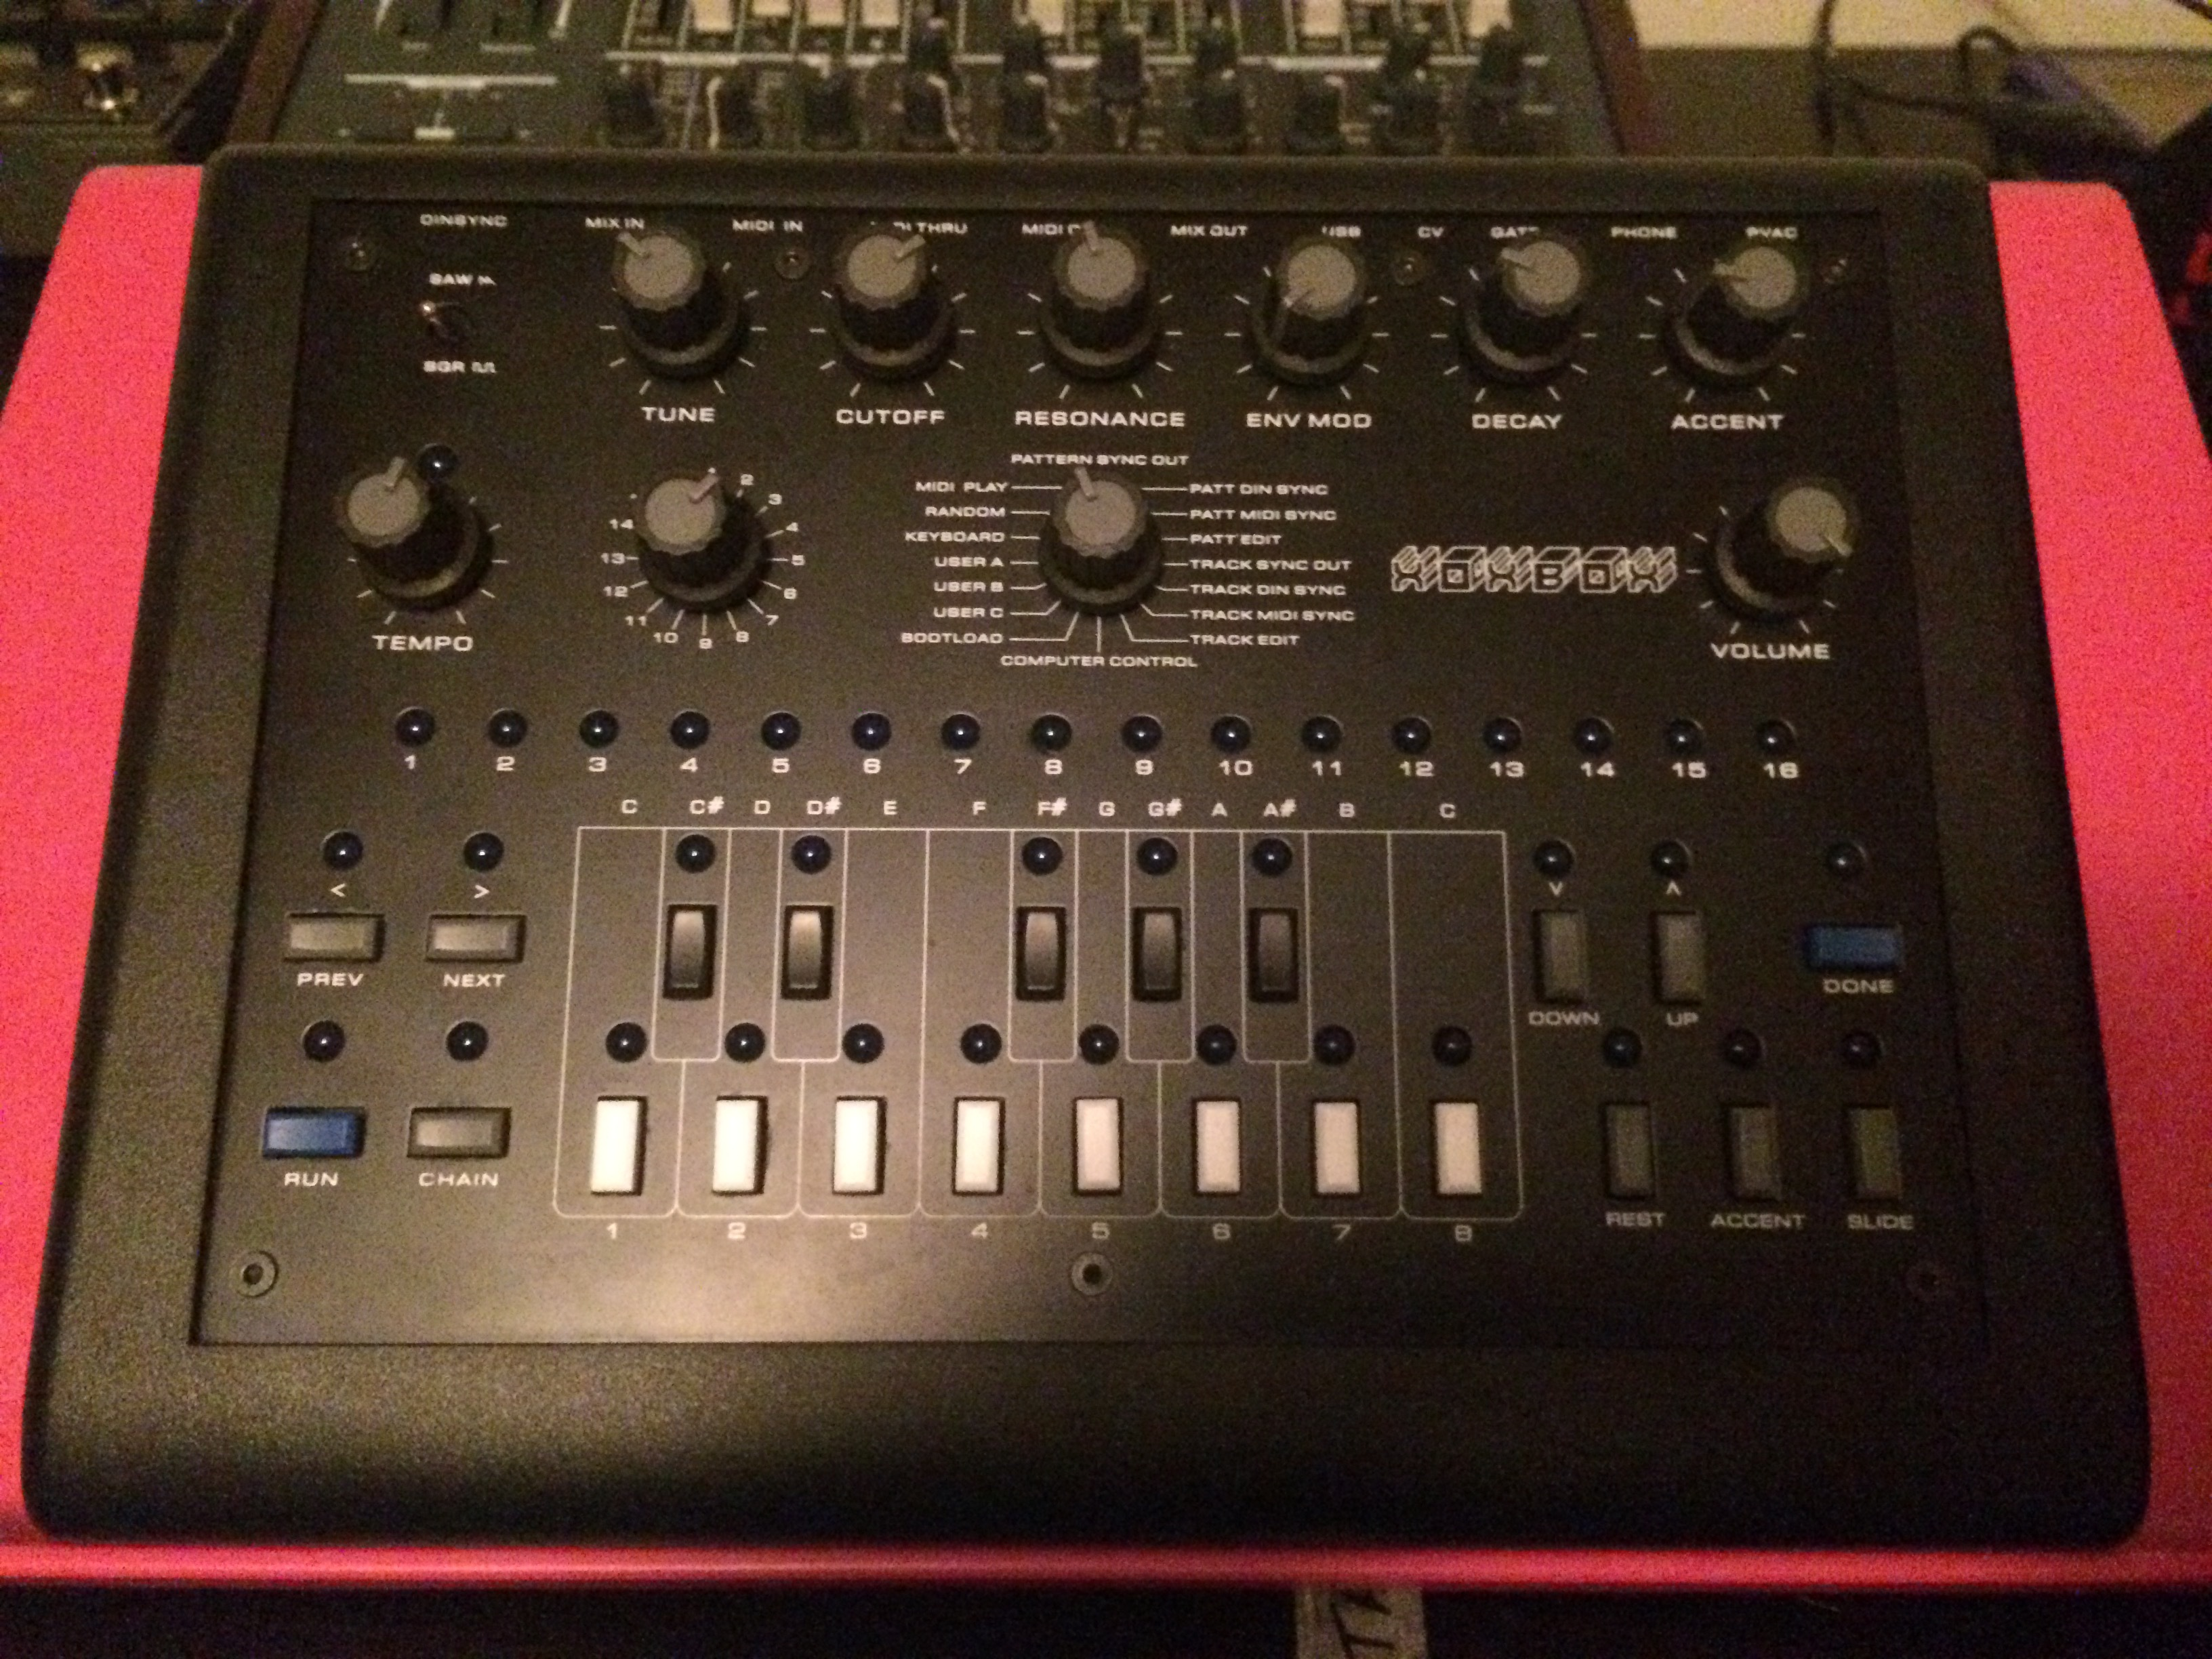 FS: Machinedrum MKII UW+ and x0xb0x with io expansion - Marketplace